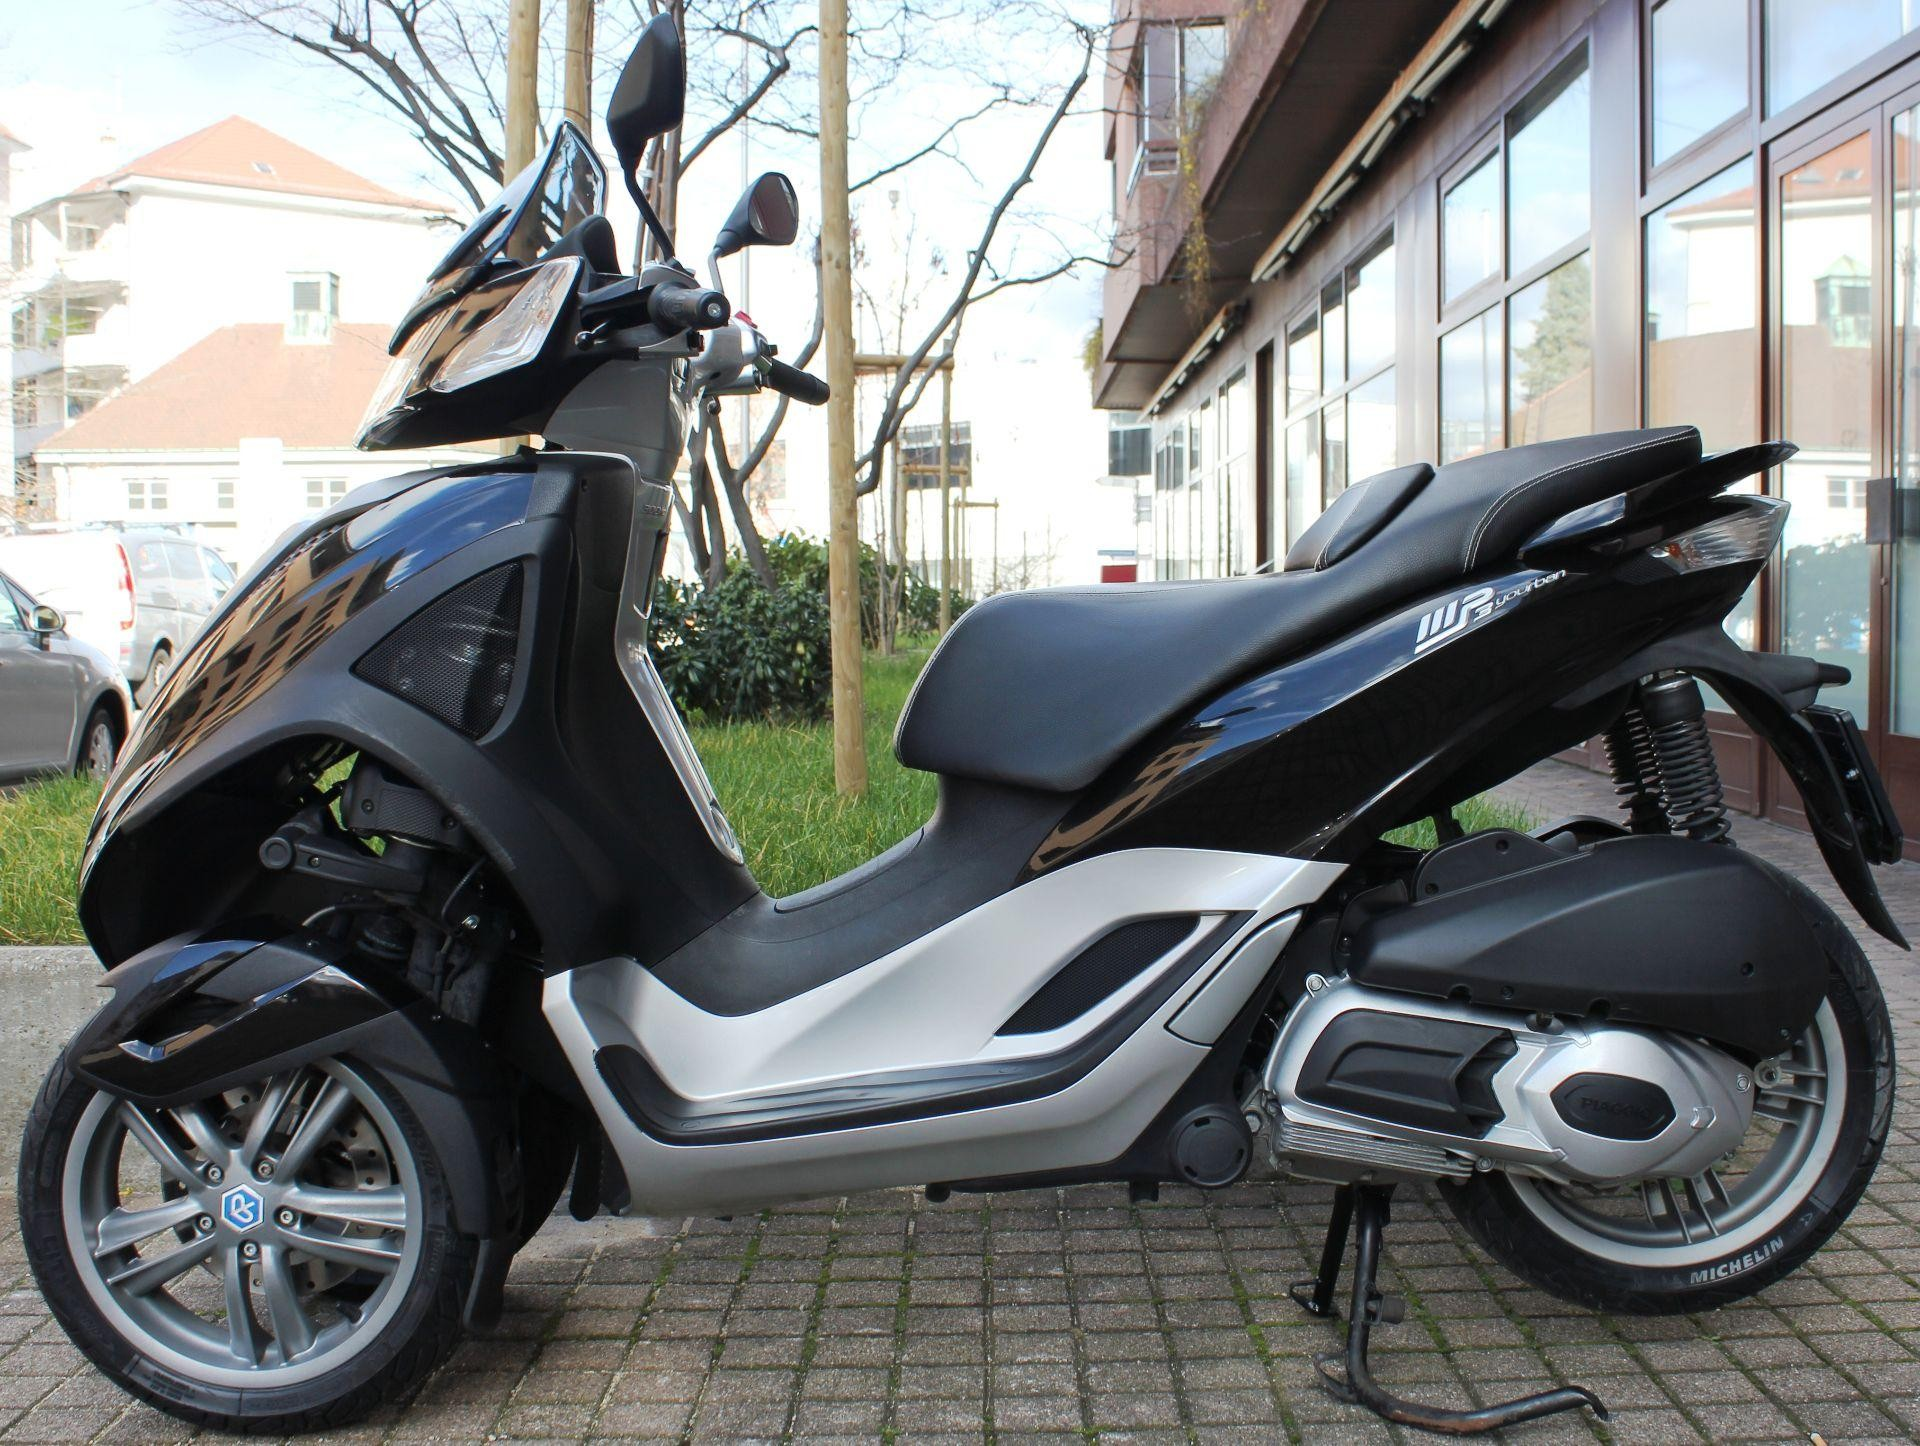 motorrad occasion kaufen piaggio mp3 300 i e yourban 3 rad id 4371 phoenix basel ag basel. Black Bedroom Furniture Sets. Home Design Ideas